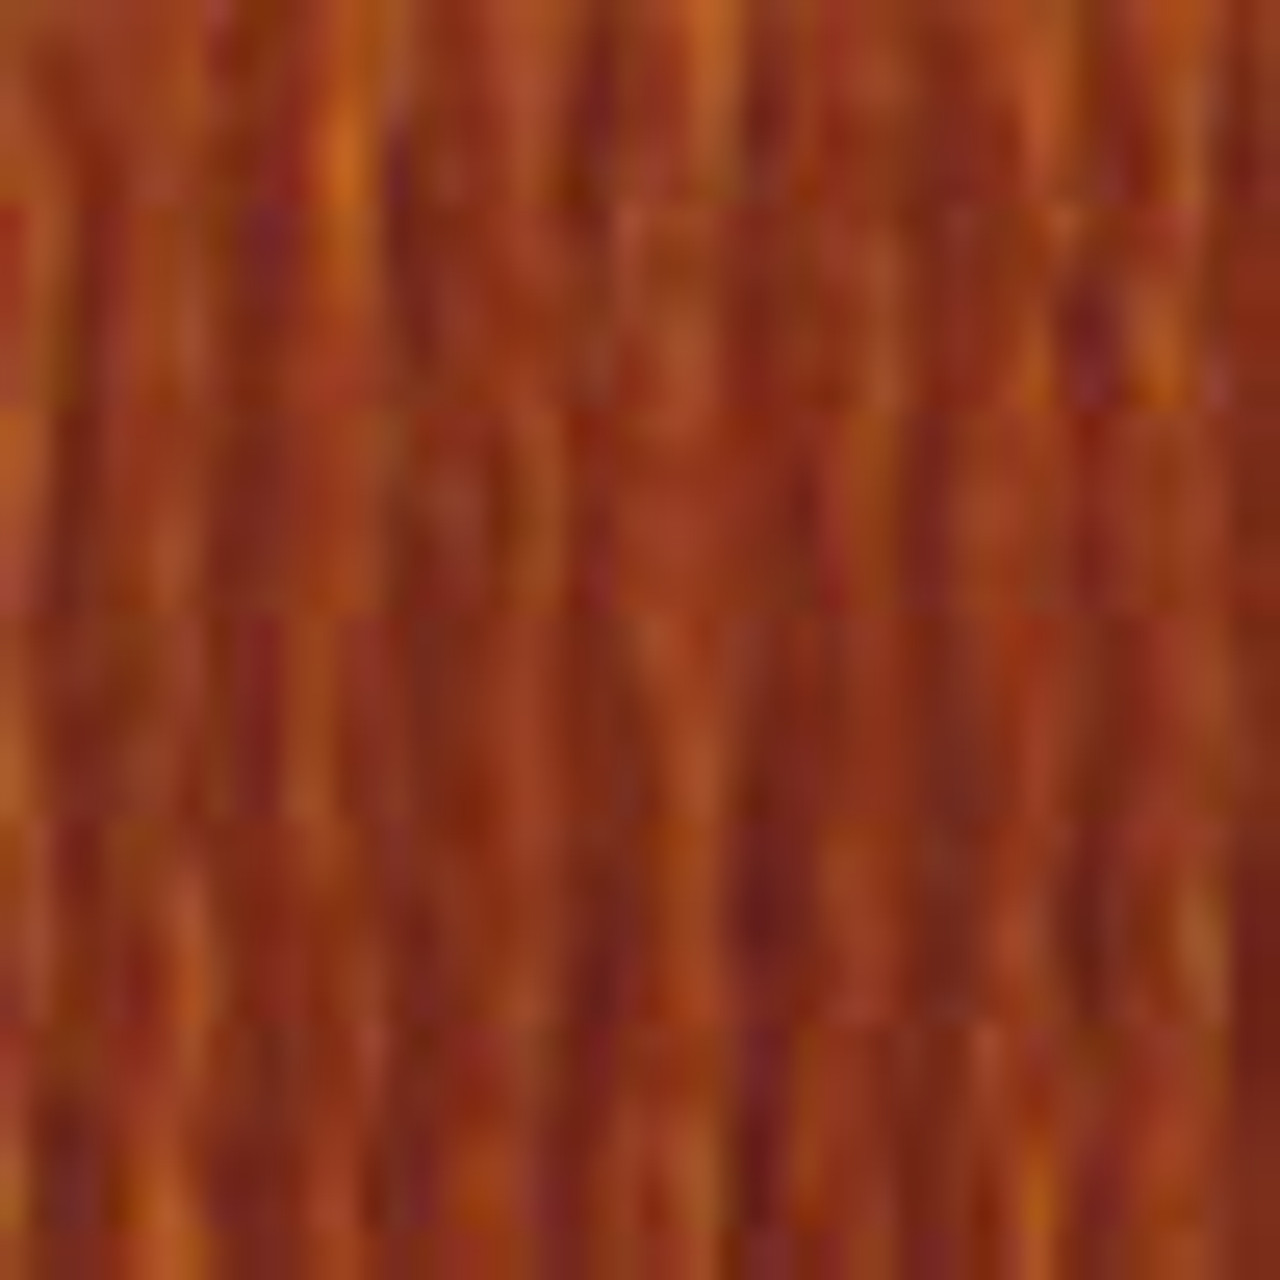 DMC # 400 Dark Mahogany Floss / Thread